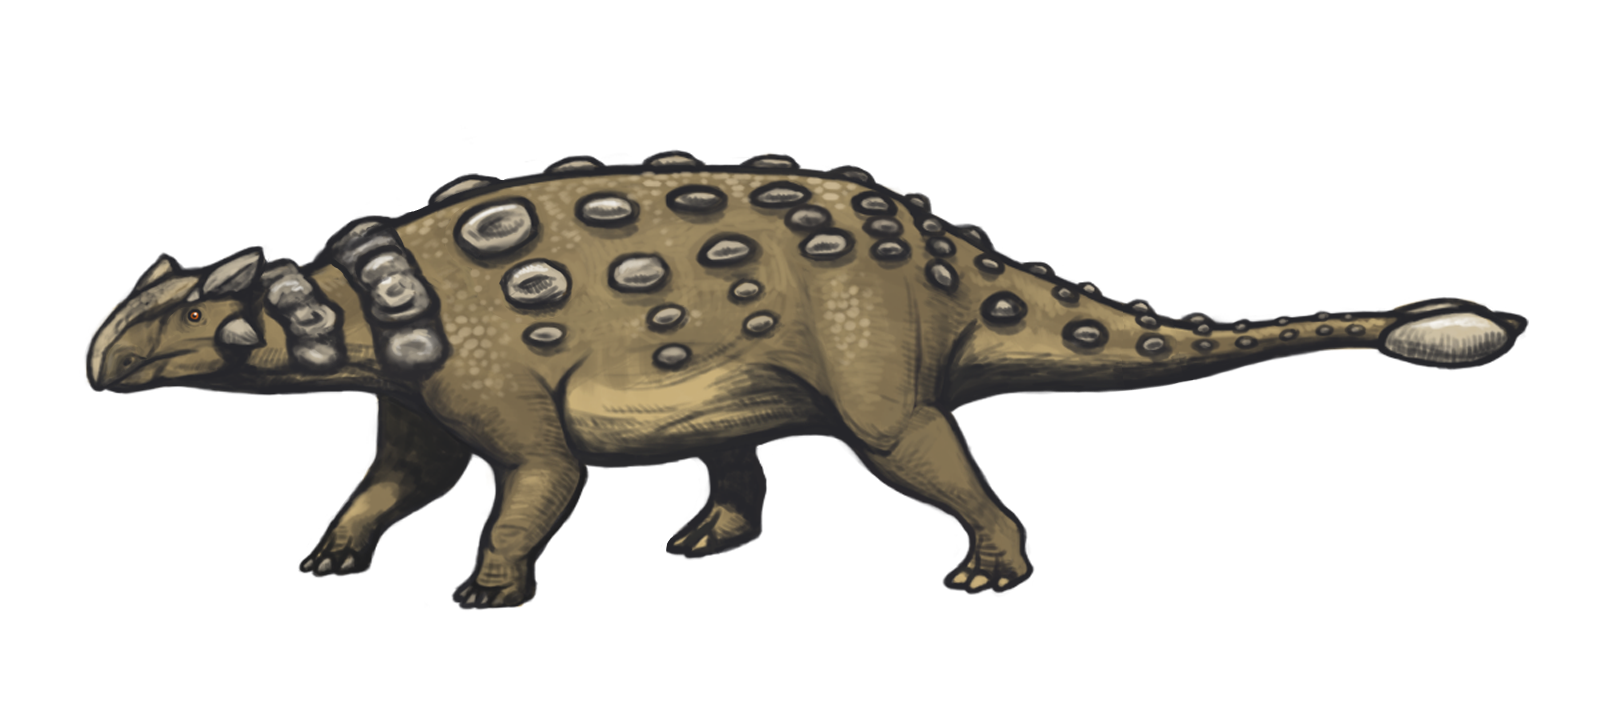 https://upload.wikimedia.org/wikipedia/commons/3/36/Ankylosaurus_magniventris_reconstruction.png